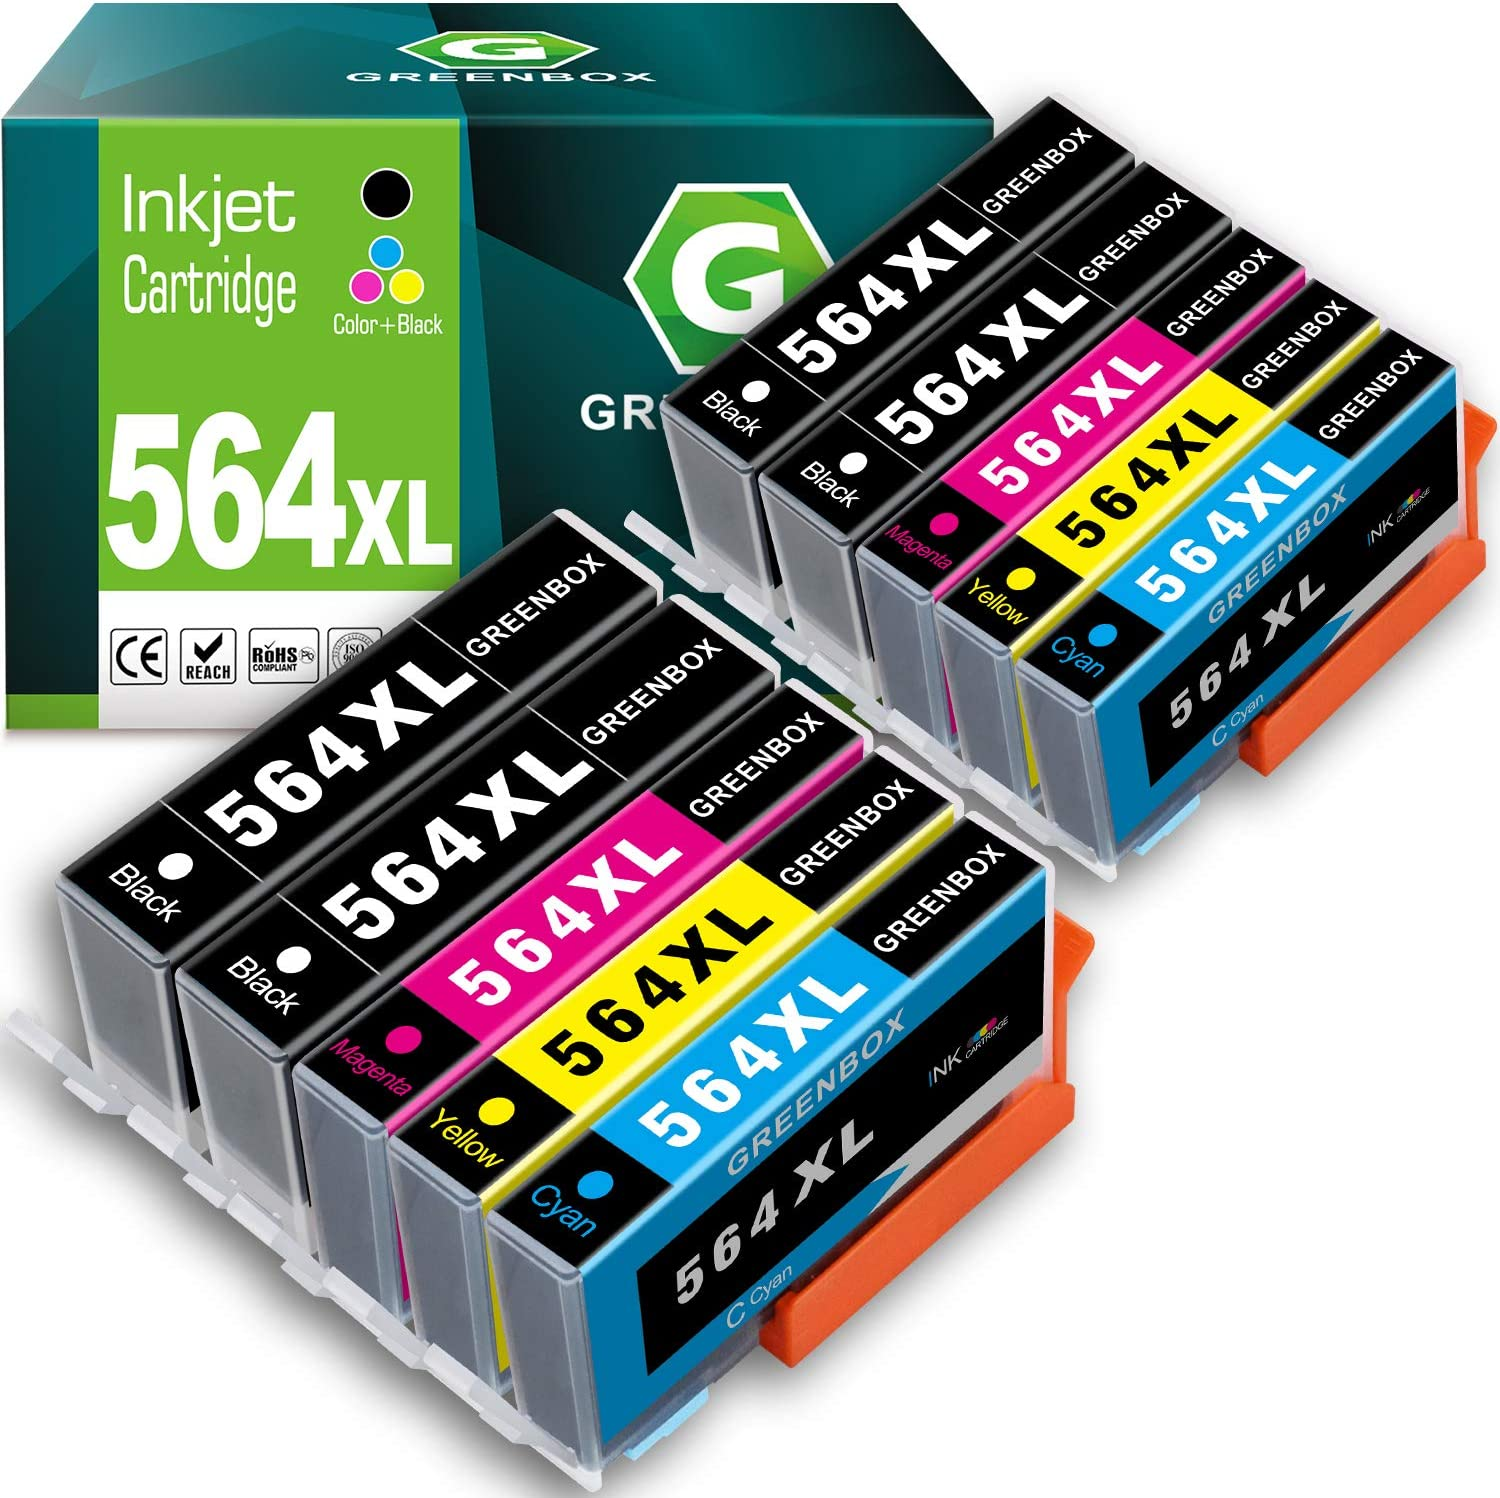 GREENBOX Compatible Ink Cartridges Replacement for HP 564XL 564 XL for HP DeskJet 3520 3522 Officejet 4620 Photosmart 5520 6510 6515 6520 7520 7525 D7560 (4 Black 2 Cyan 2 Magenta 2 Yellow)